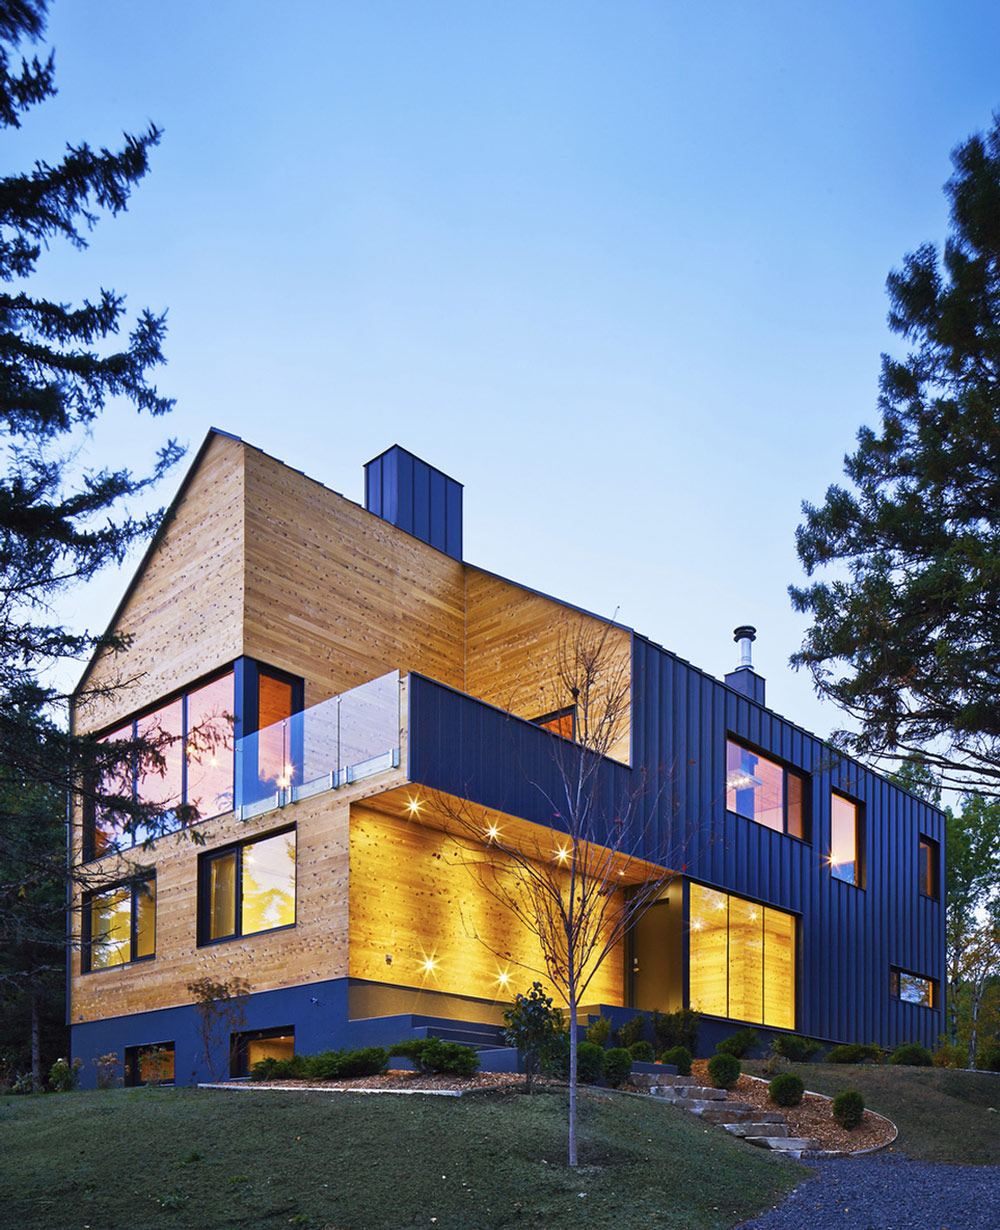 Malbaie VIII Residence in the Charlevoix region of Quebec, Canada